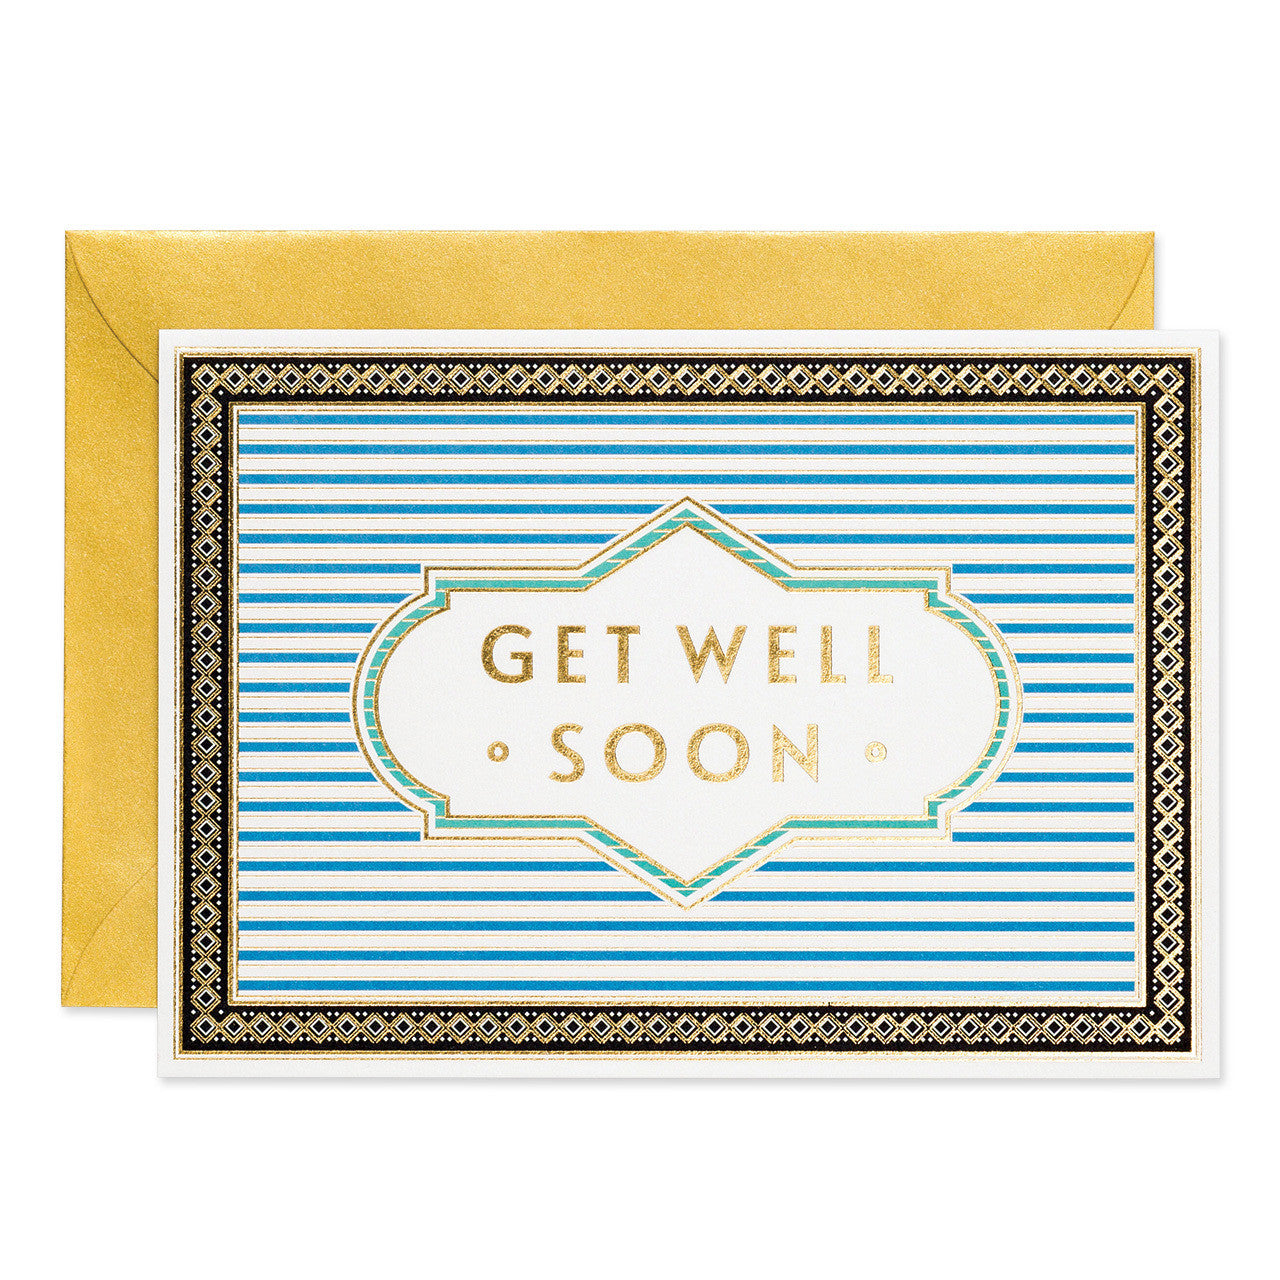 Get Well Soon- Art Deco